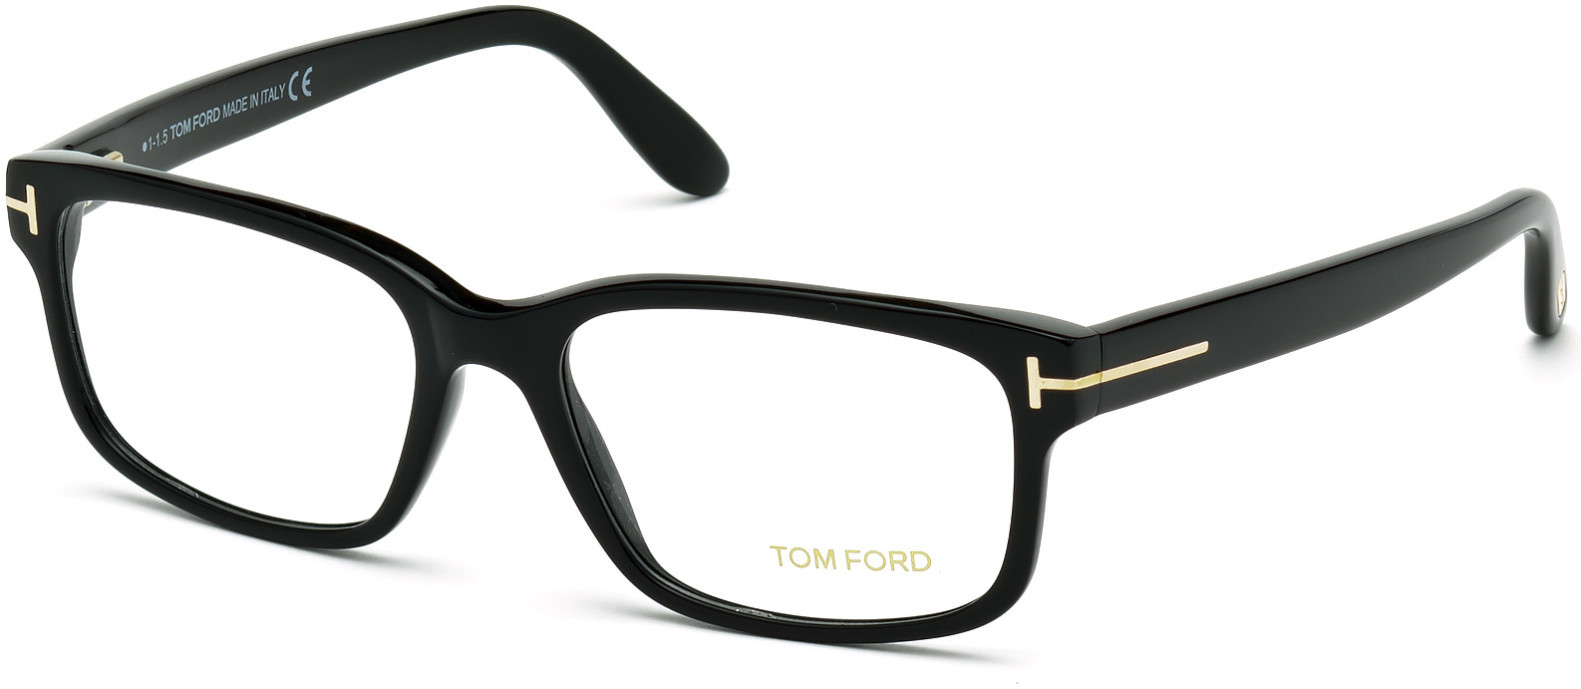 ecc73f030d4 Receive 15% Off and a Free Cleaning Kit. Tom Ford FT5313 Eyeglasses